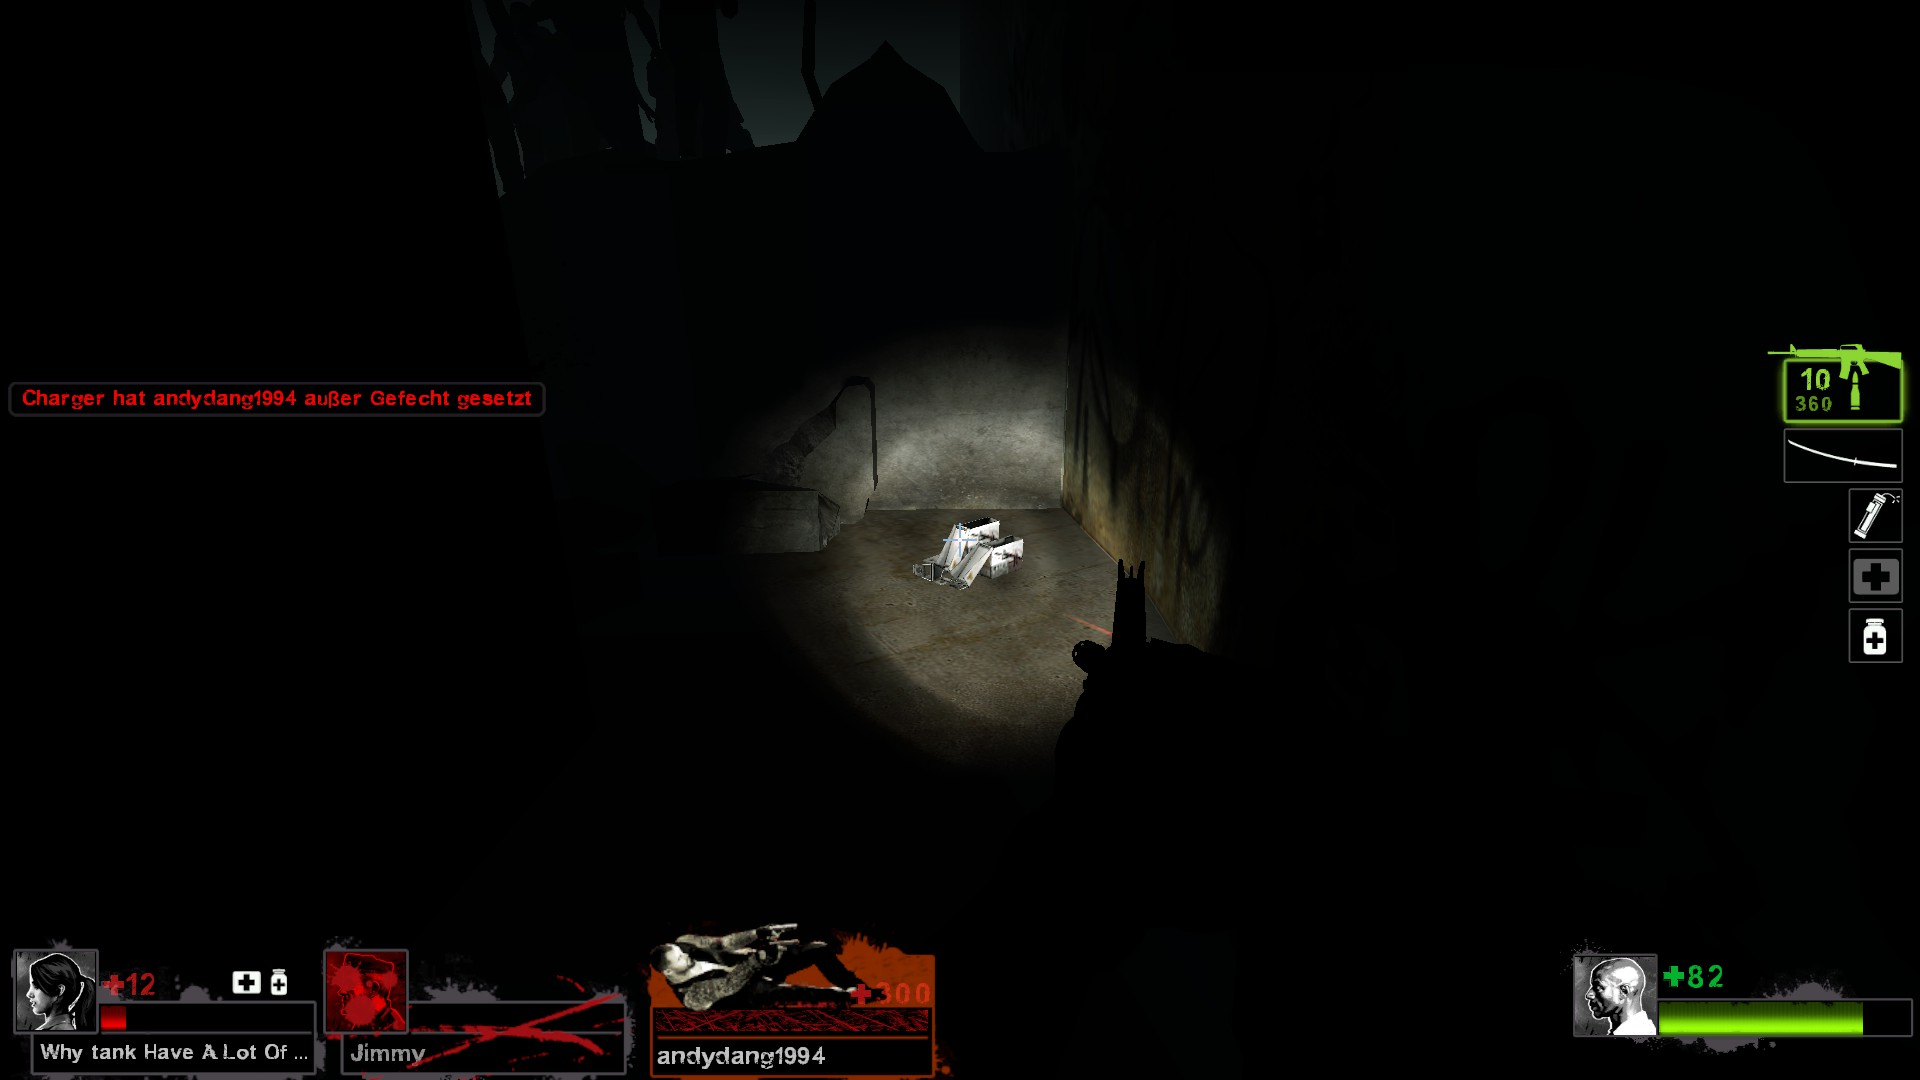 Left 4 Dead 2 - Detailed Guide for All Laser Sight Locations in Game - Map Guide - Potential spots, L4D1 maps - 715E31B